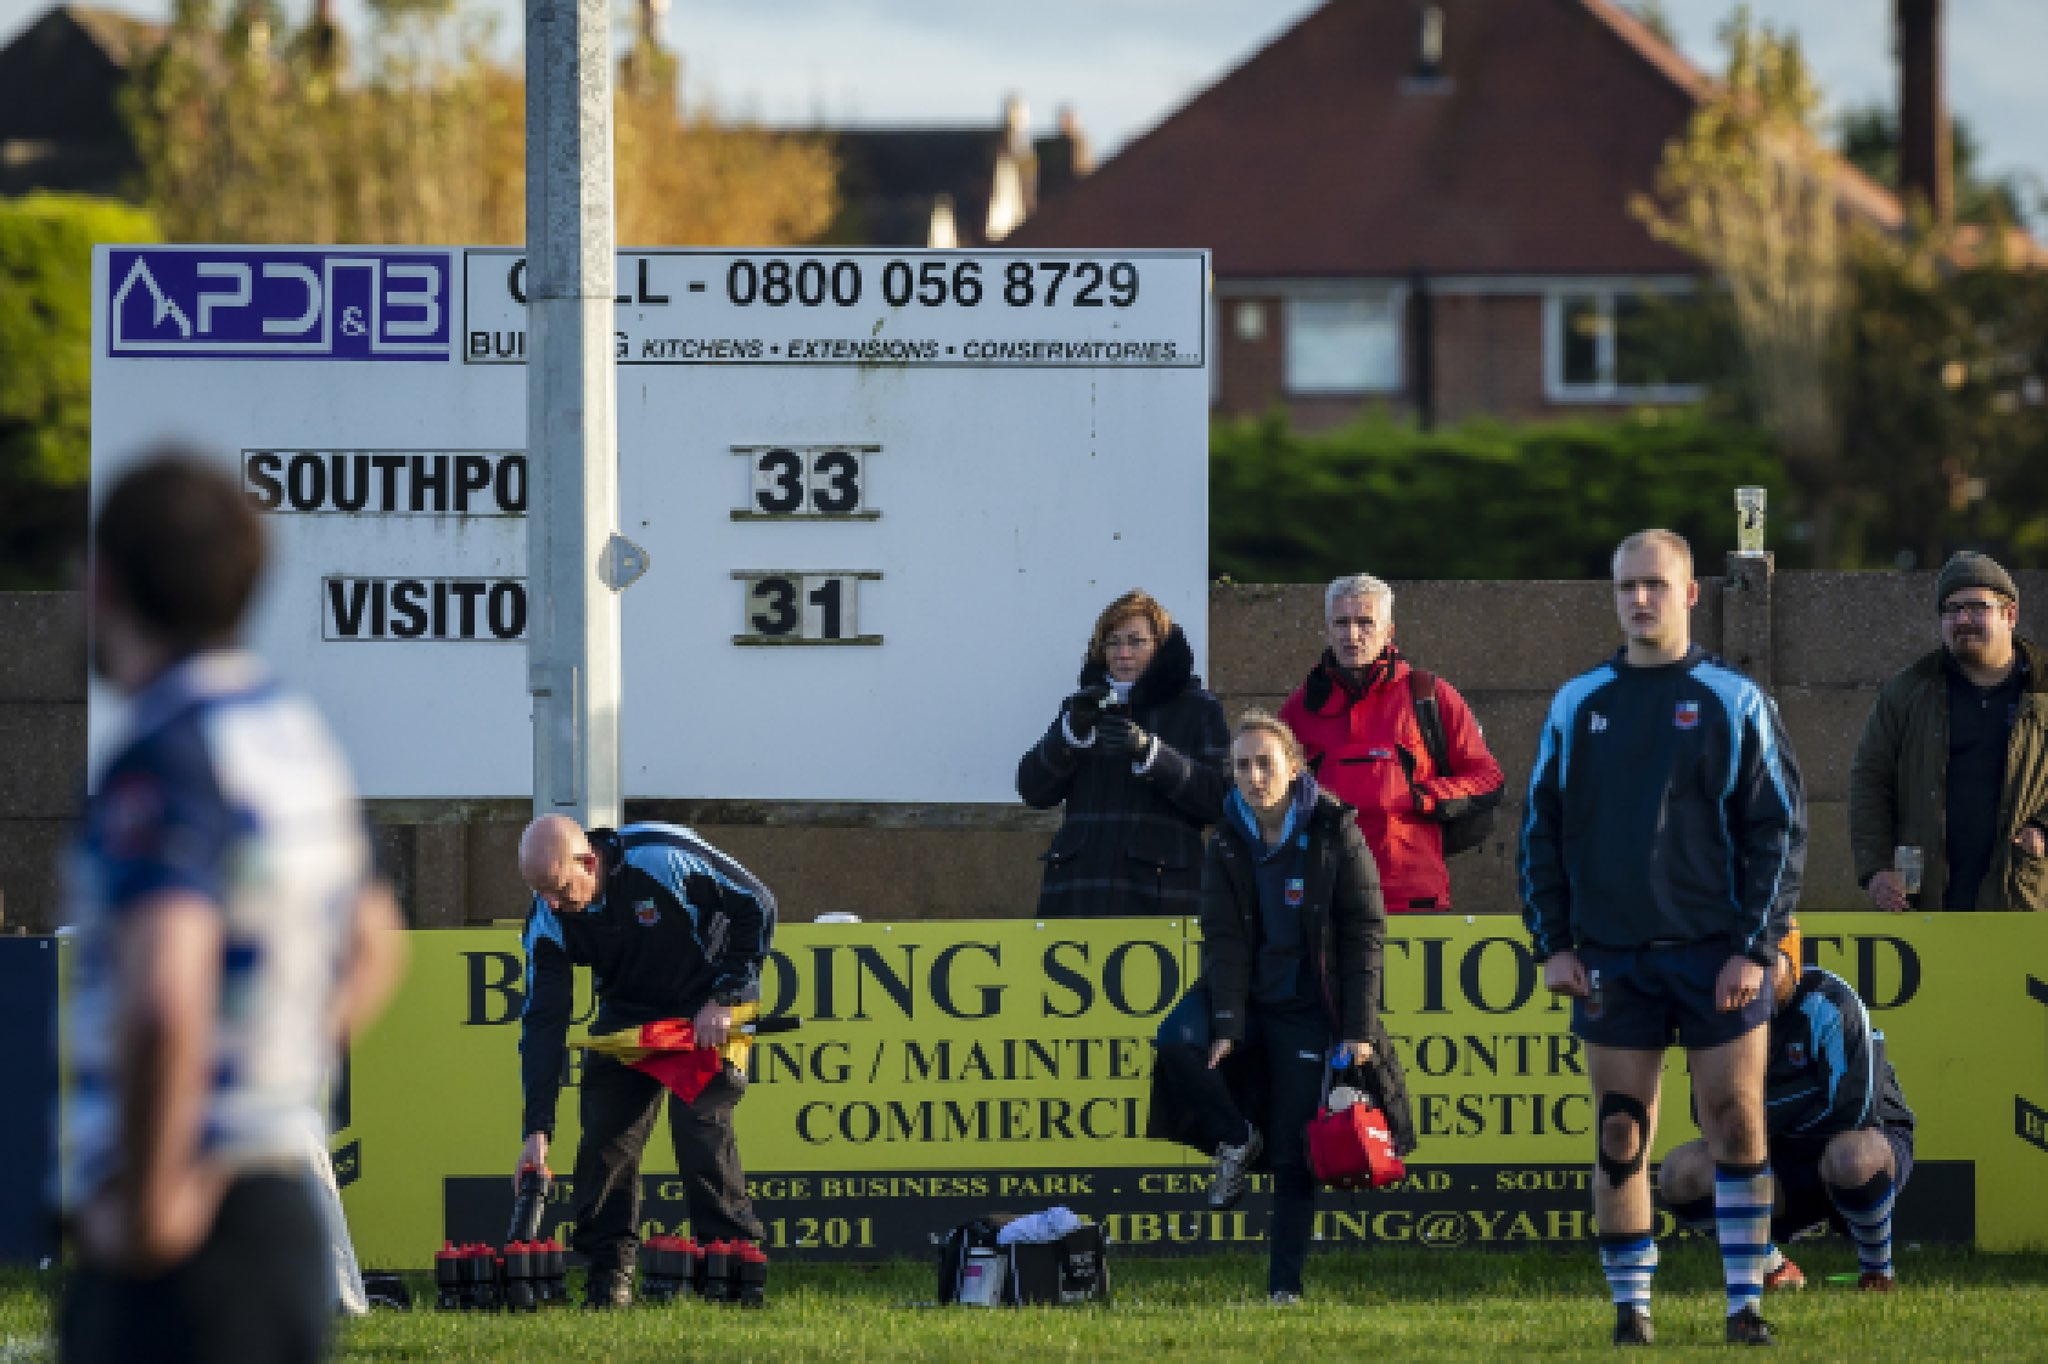 The old digital scoreboard at Southport Rugby Football Club